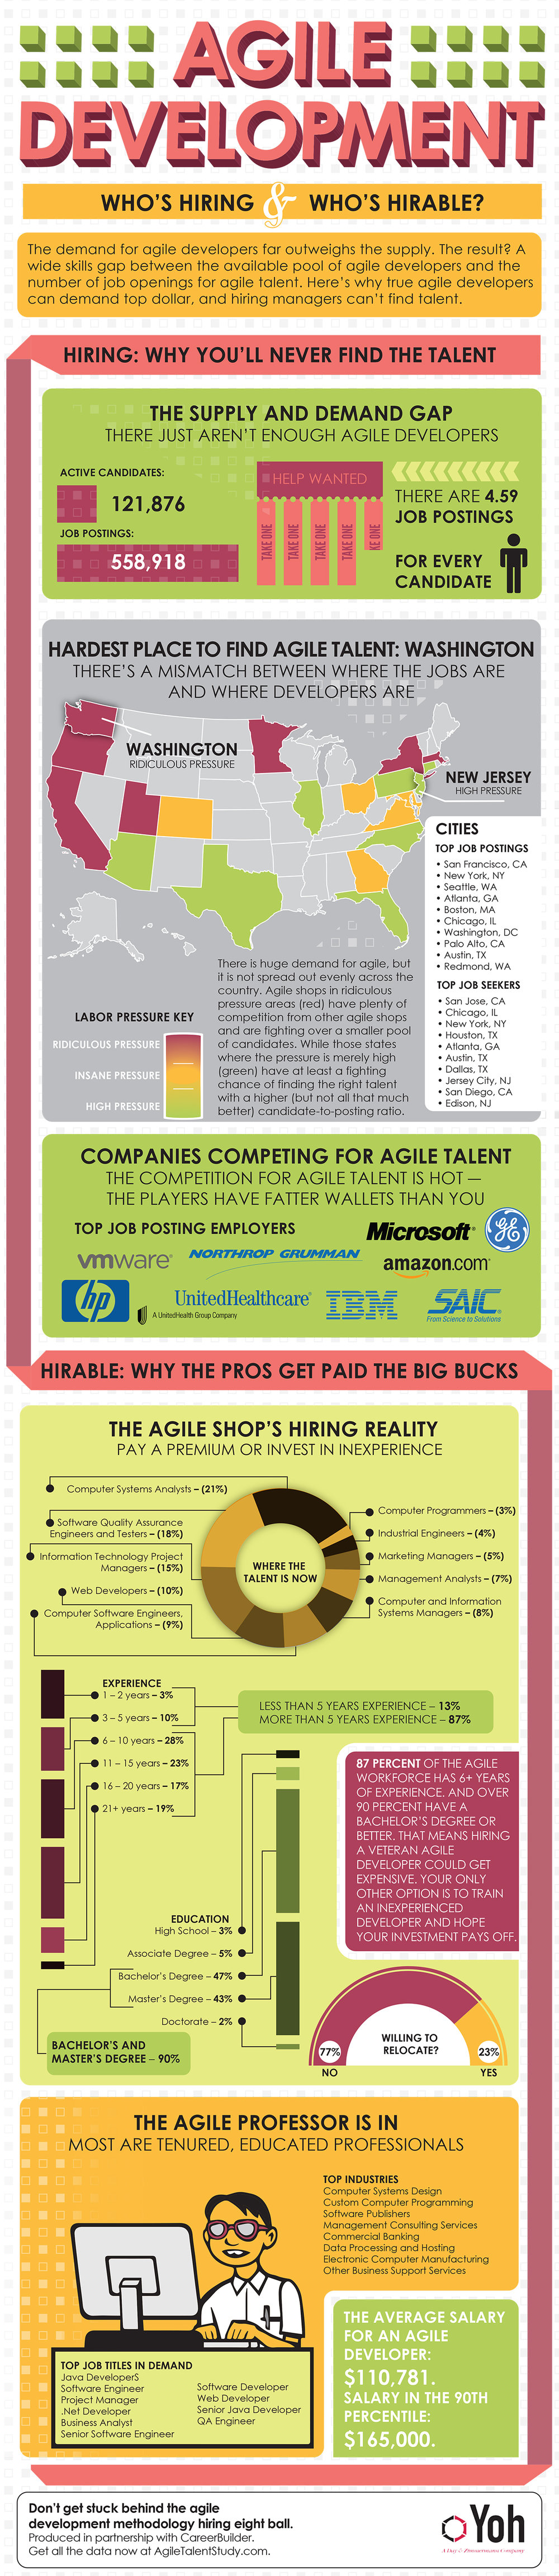 Agile Development Methodology Talent Gap infographic